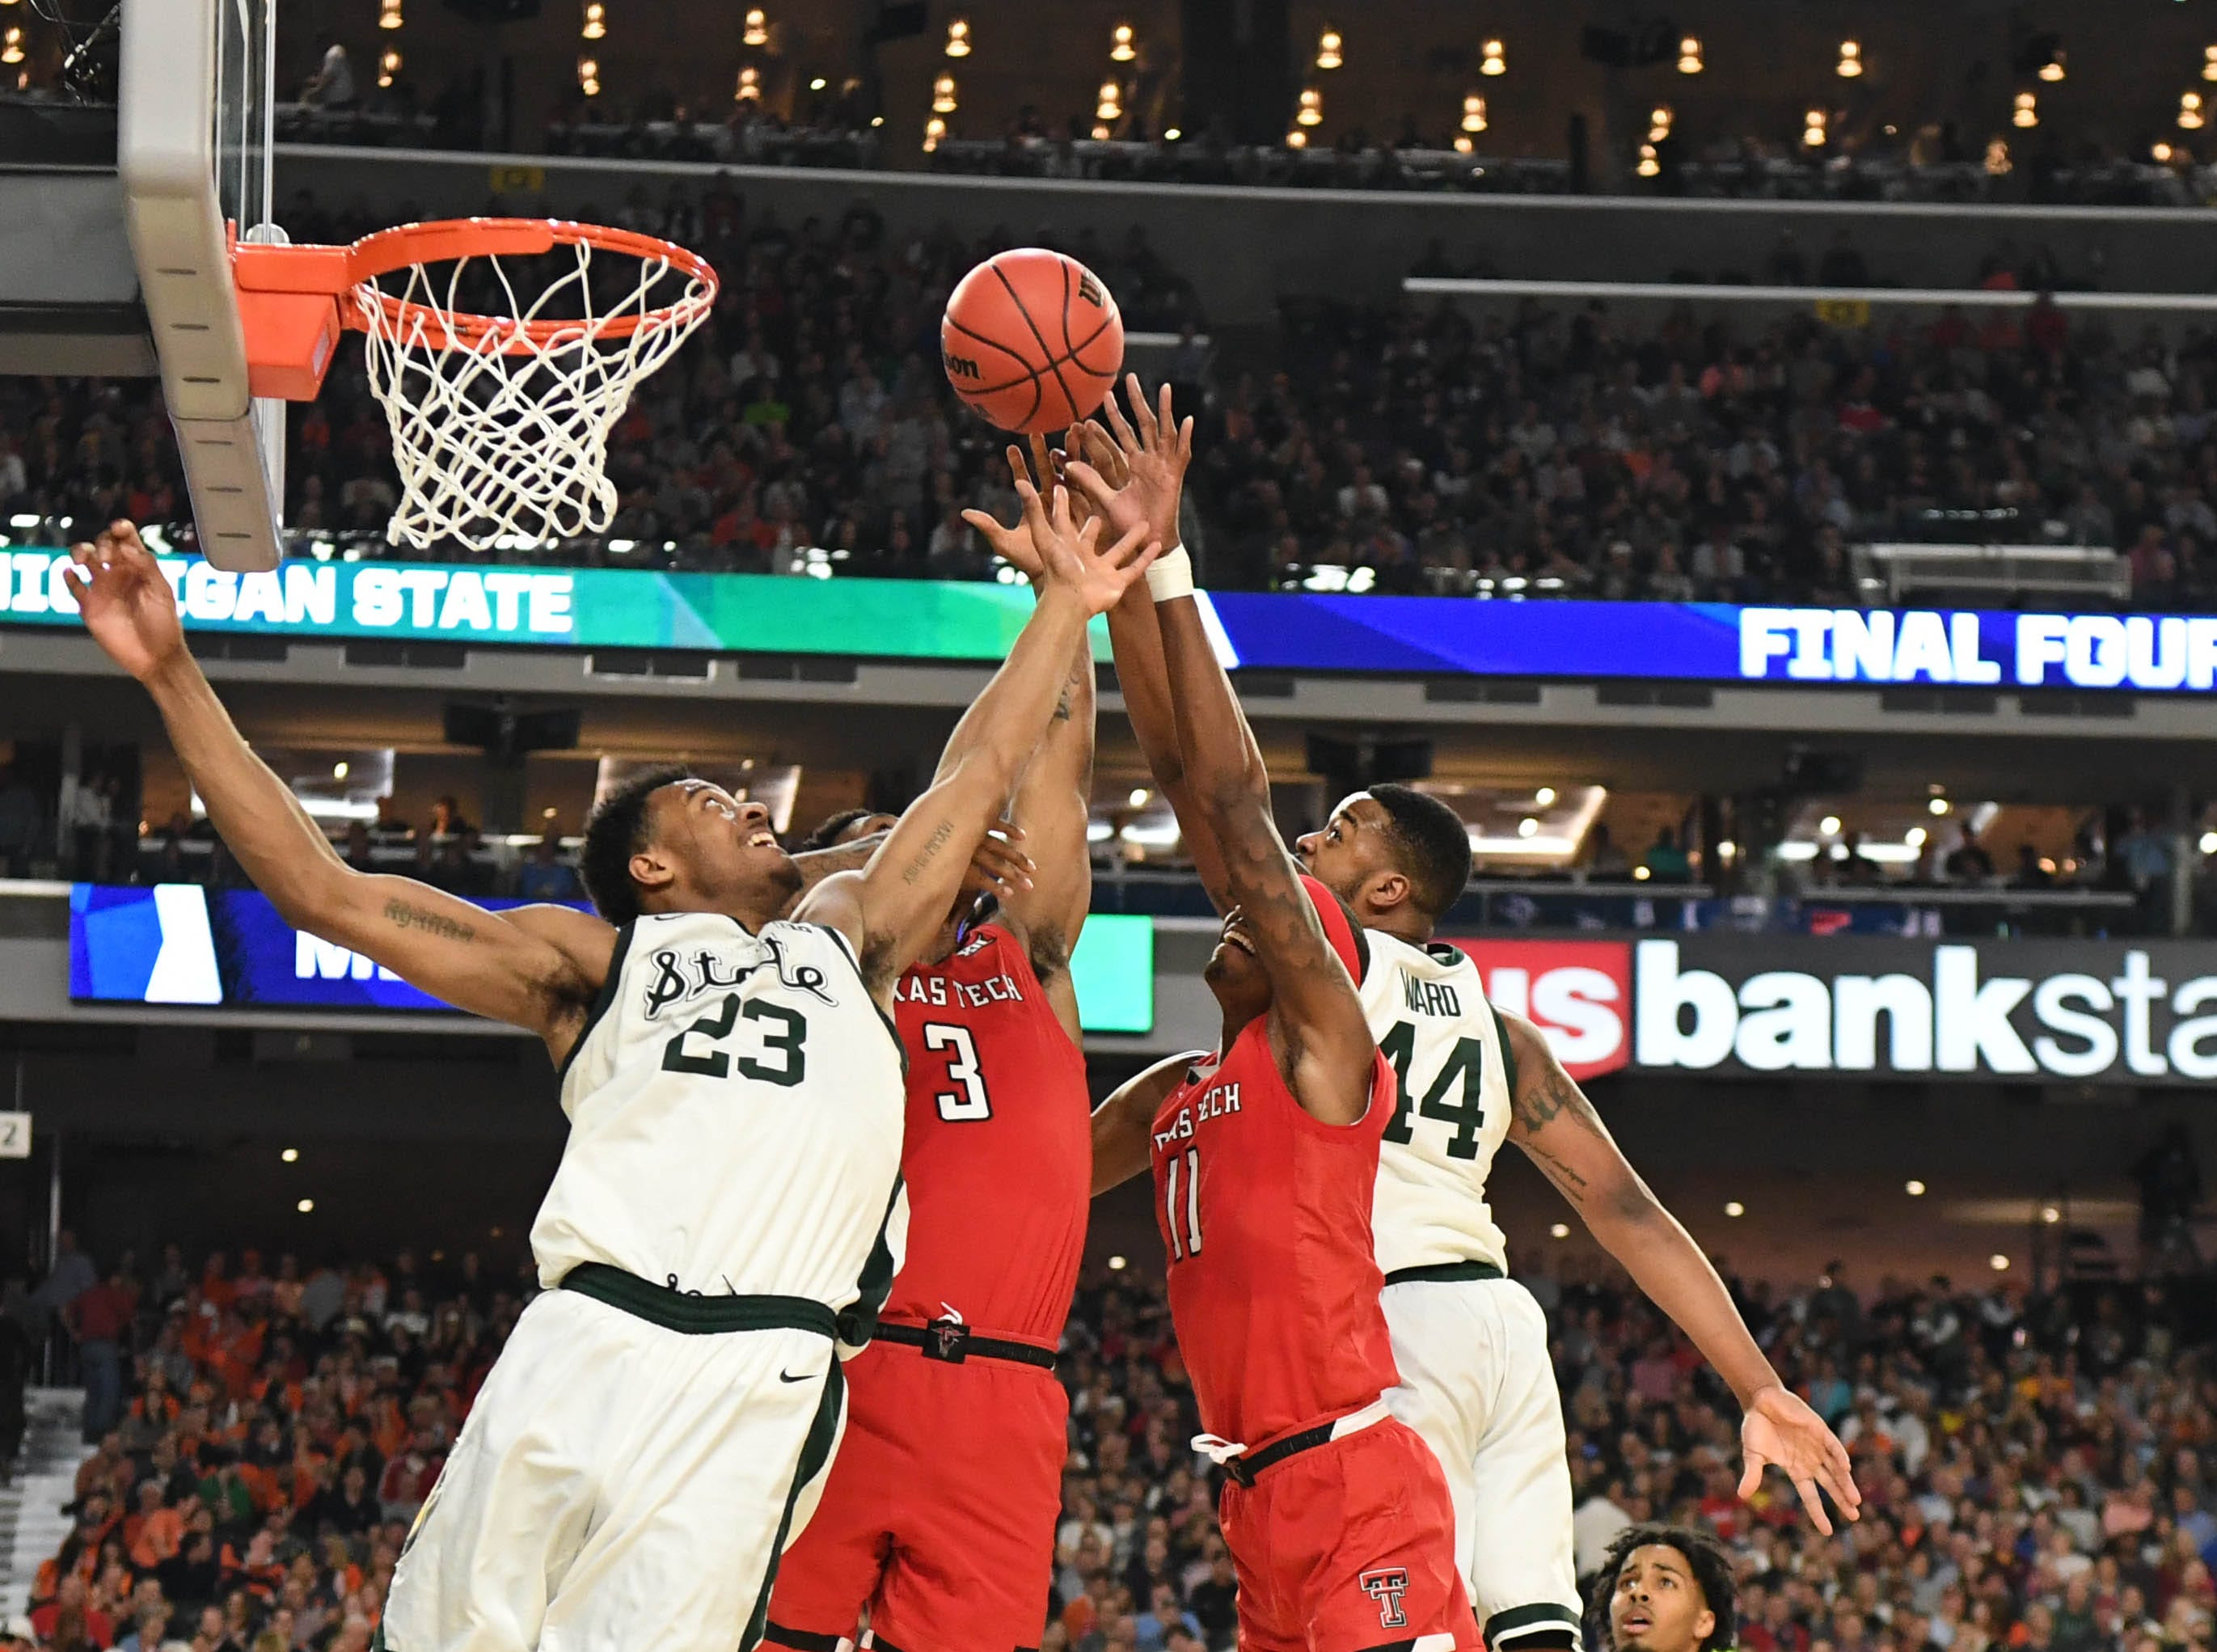 Michigan State Spartans forwards Xavier Tillman (23) and Nick Ward (44) go for a rebound with Texas Tech Red Raiders forwards Deshawn Corprew (3) and Tariq Owens (11).